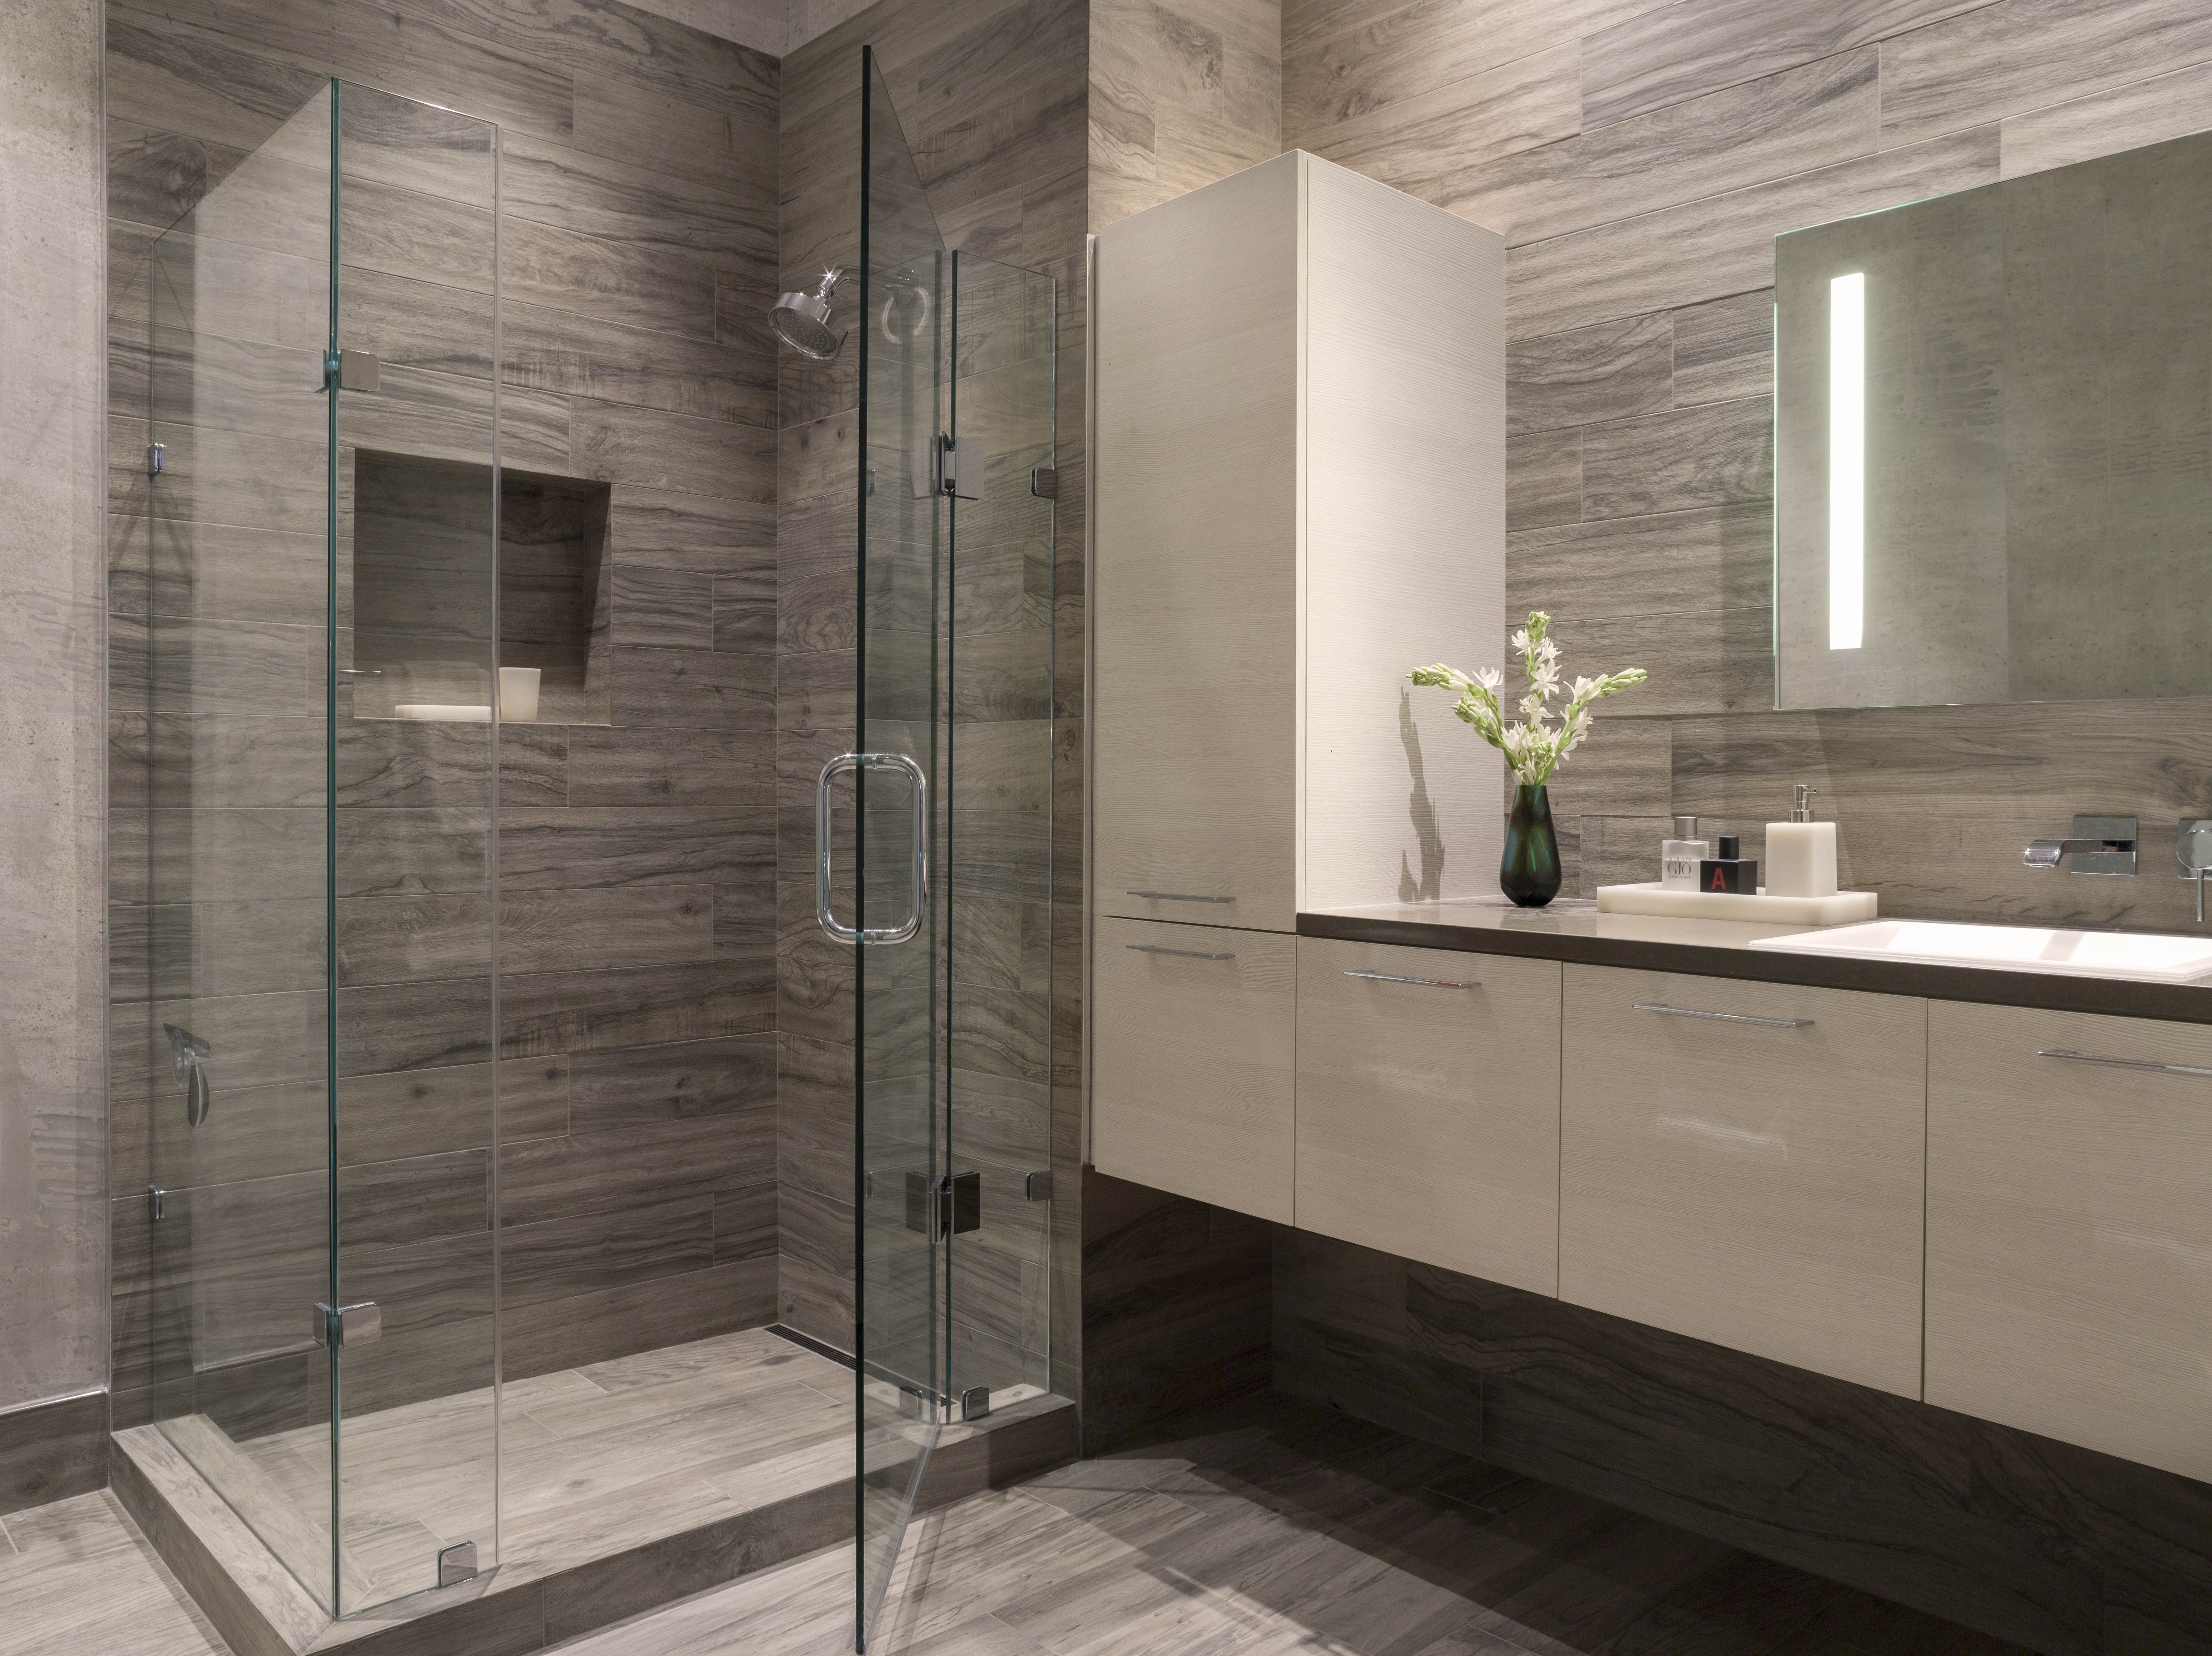 bathroom tile designs contemporary photo - 5